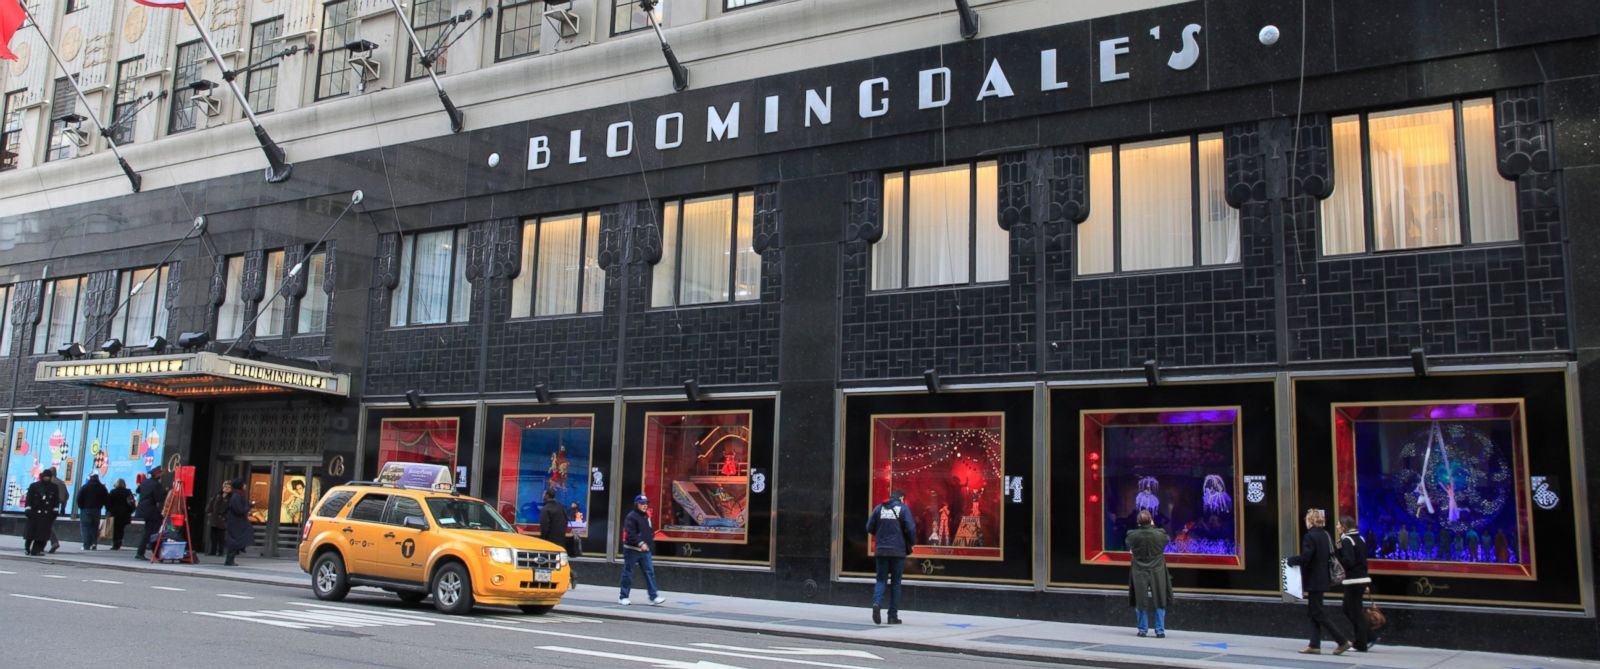 Bloomingdale's NYC features clothes and accessories for everyone in the family, as well as toys, kitchenware and more. A NYC landmark since it opened in , the Bloomingdale's Department Store in Manhattan is one of the most popular places to shop in NYC.